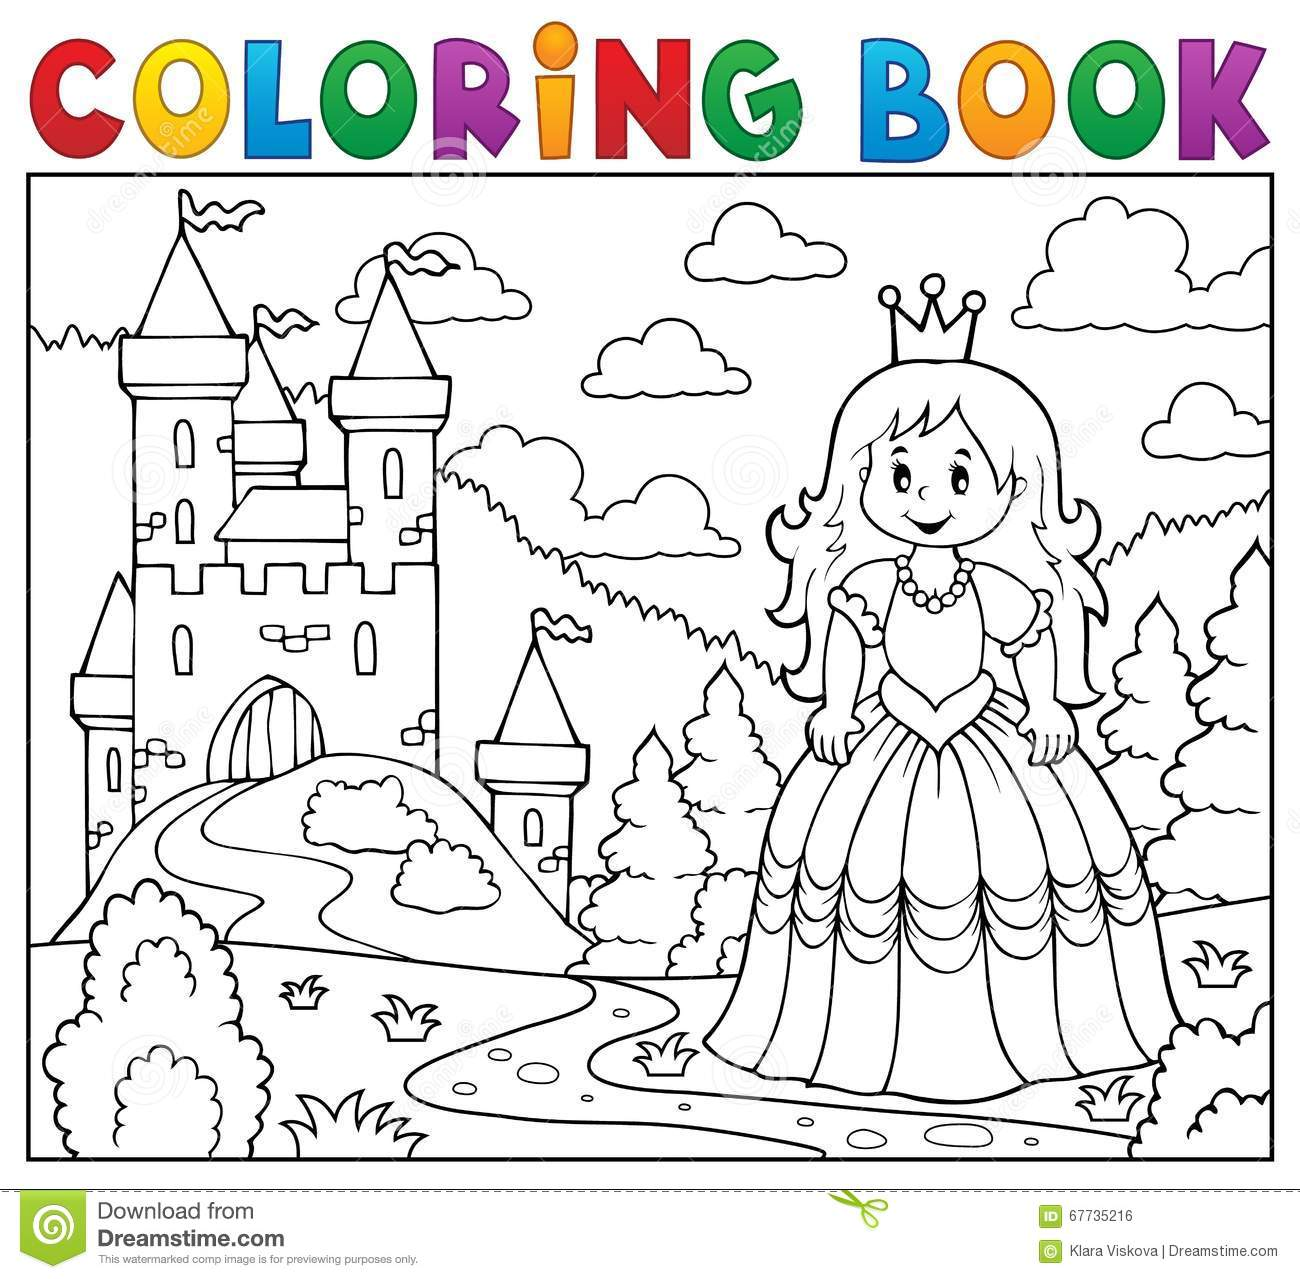 Coloring book princess - Coloring Book Princess Near Castle